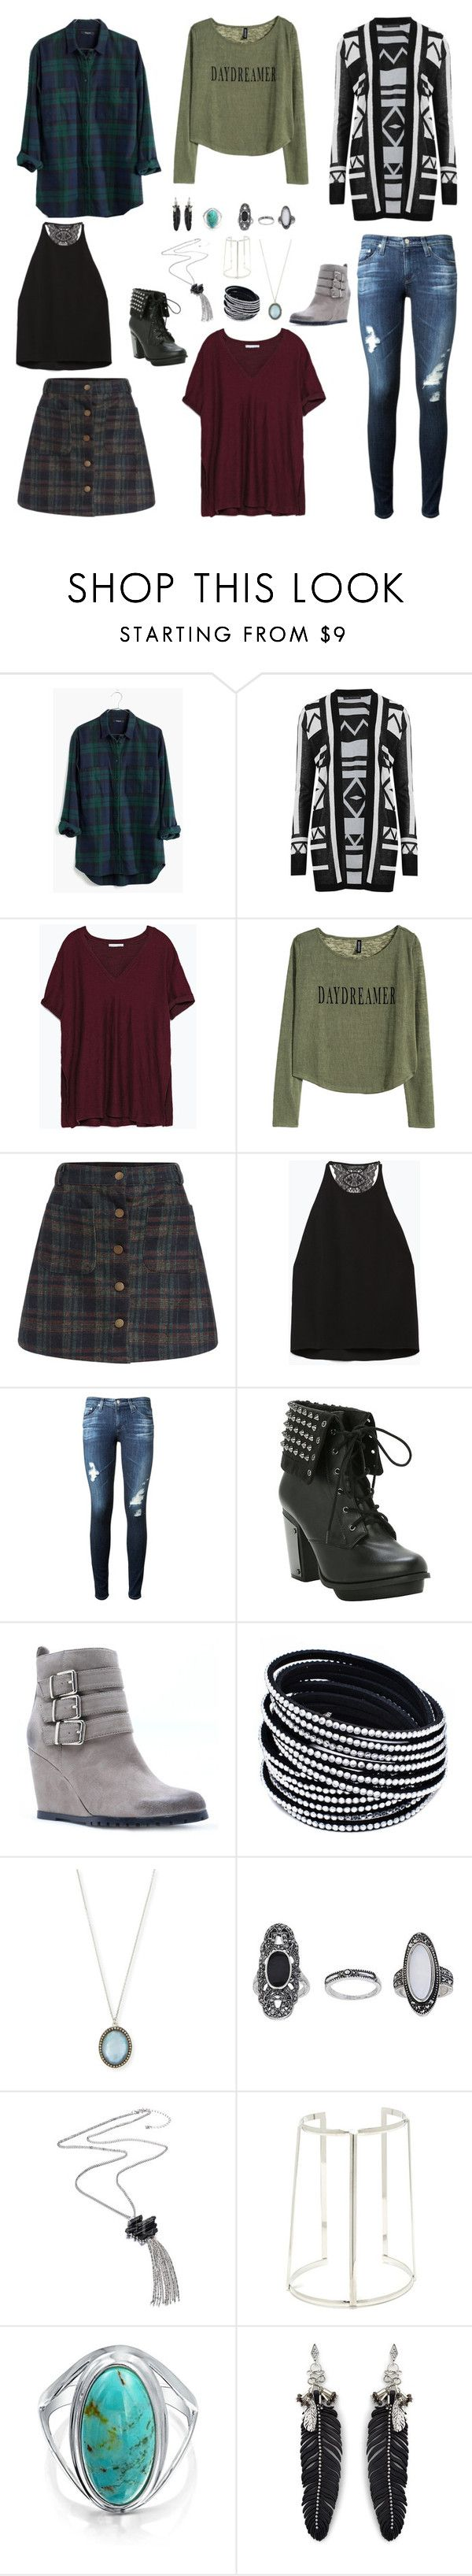 """""""Bella And The Bulldogs - Sophie Inspired Outfits"""" by verostyle16 ❤ liked on Polyvore featuring Madewell, M&S Collection, Zara, H&M, AG Adriano Goldschmied, Qupid, Armenta, Topshop, Bling Jewelry and Rebecca Minkoff"""